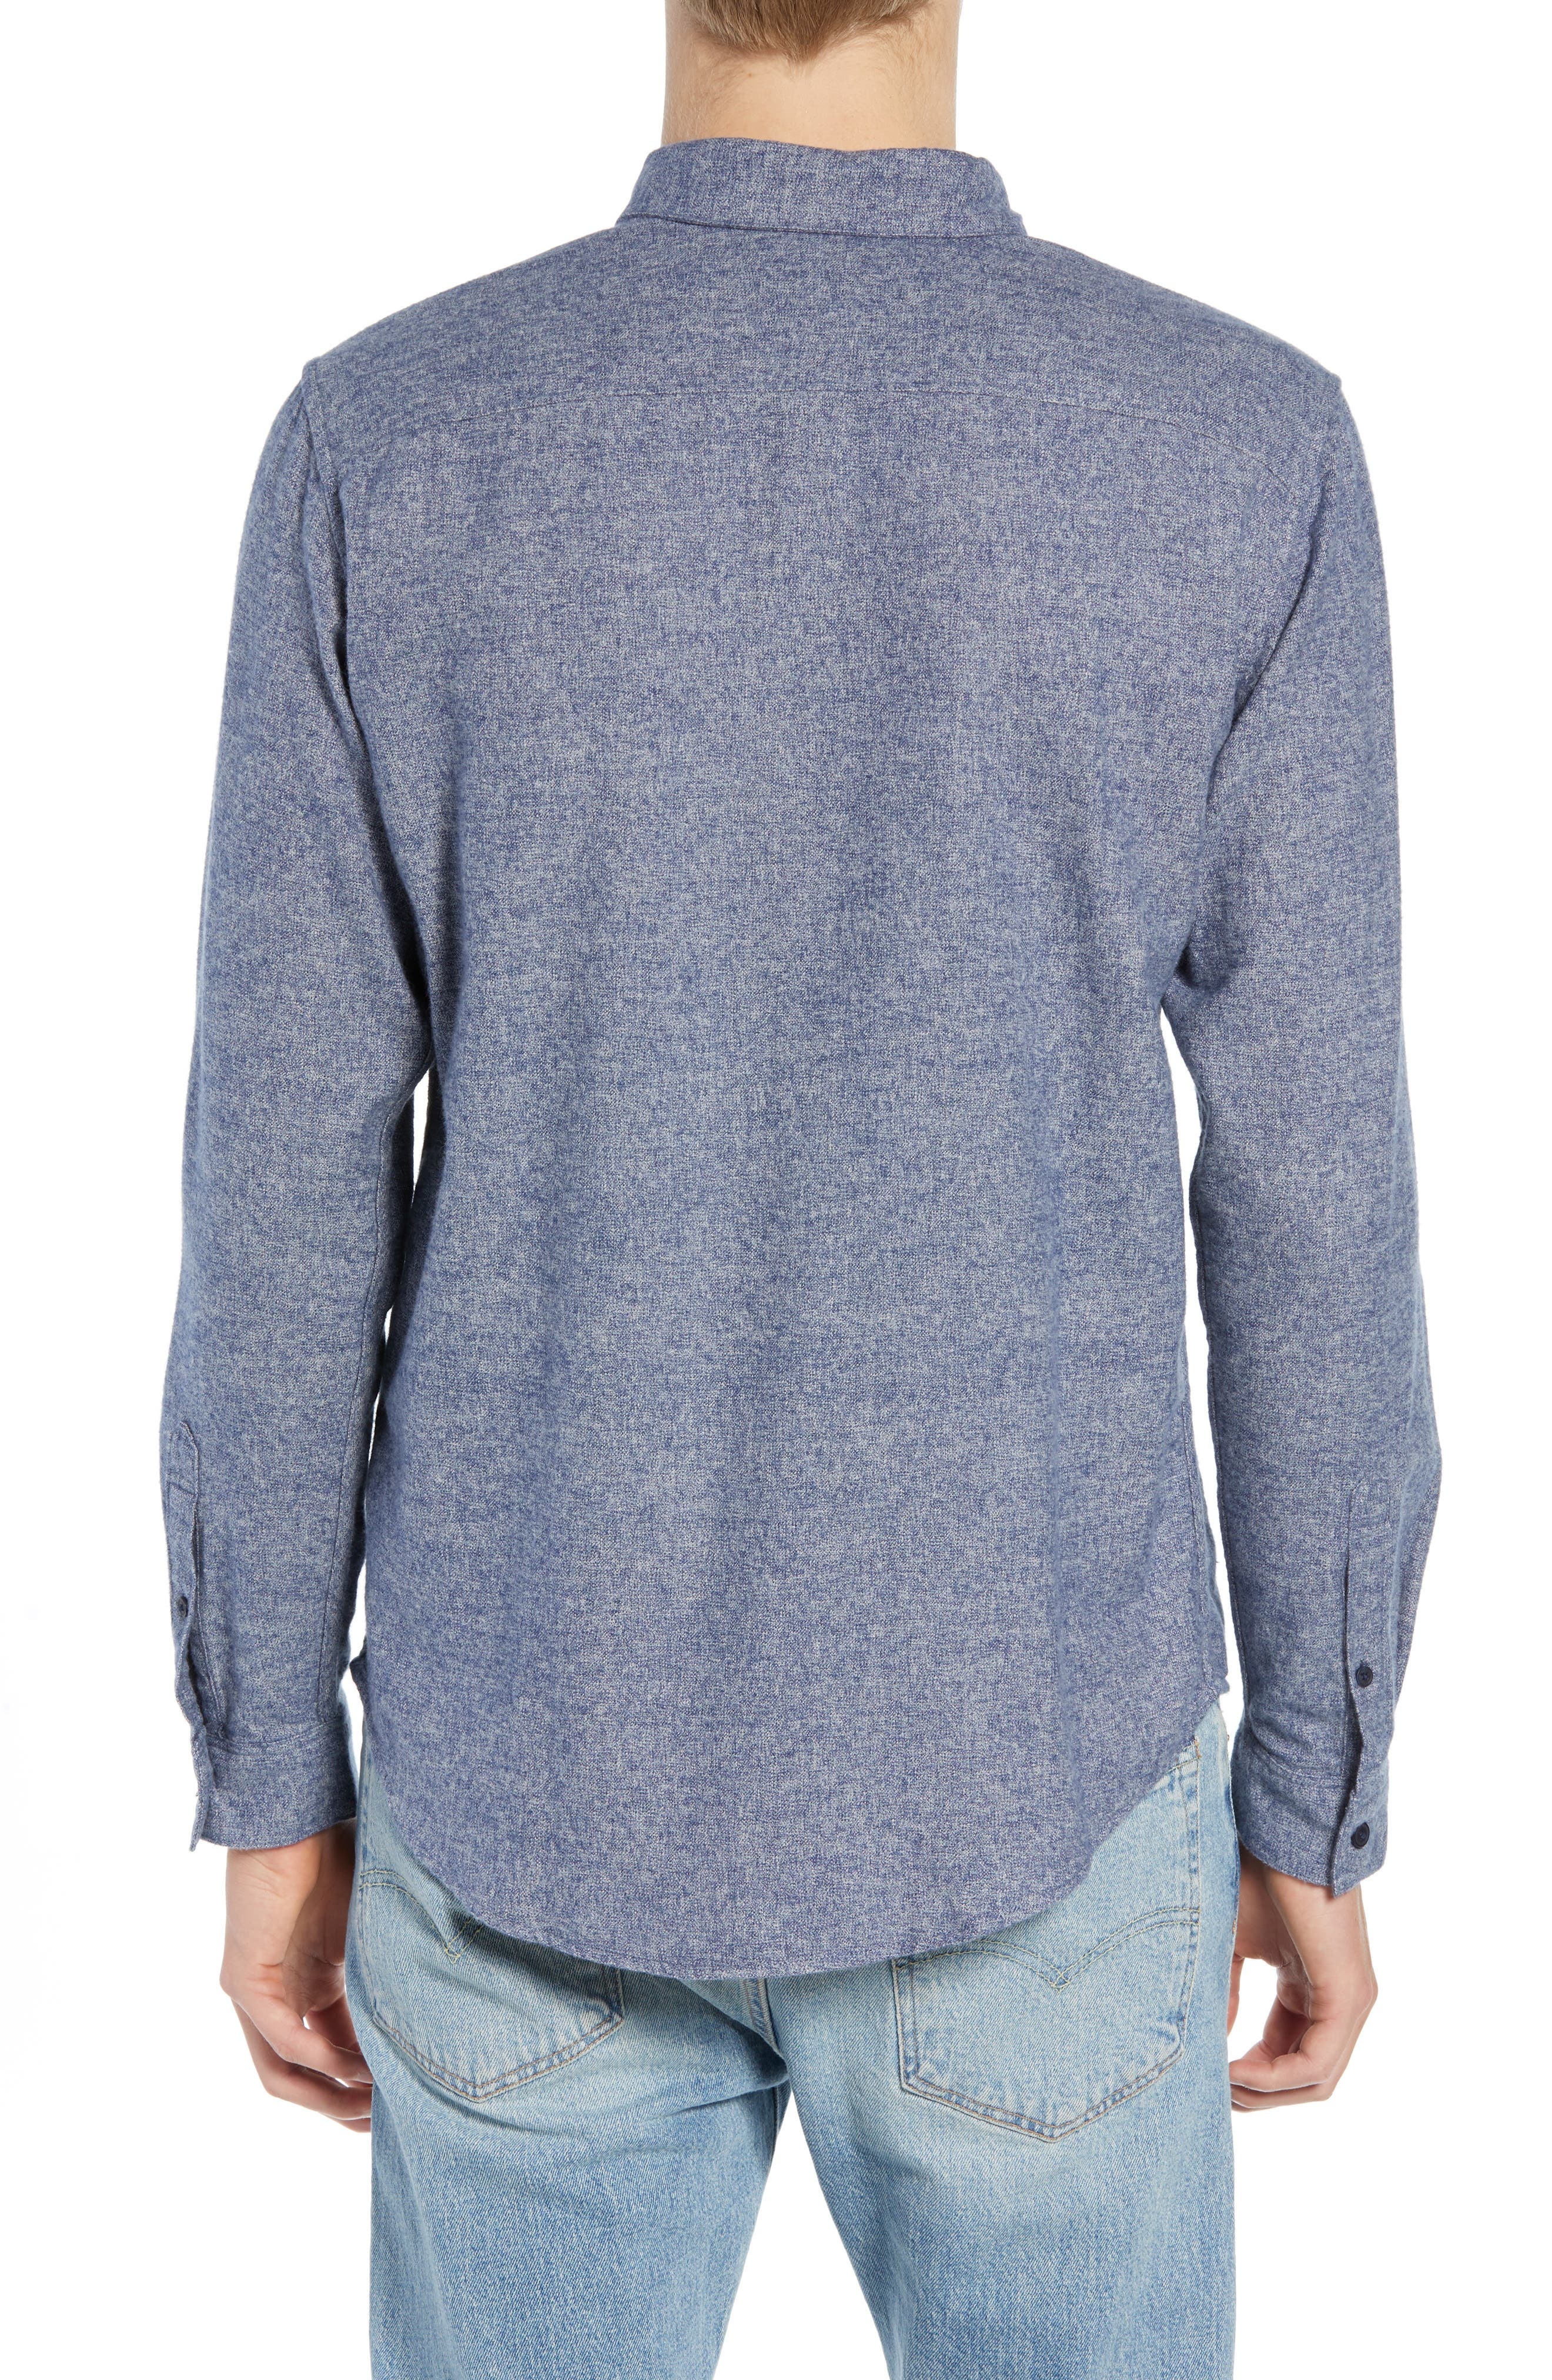 Levi's<sup>®</sup> Made & Crafted Standard Regular Fit Twill Shirt,                             Alternate thumbnail 3, color,                             400